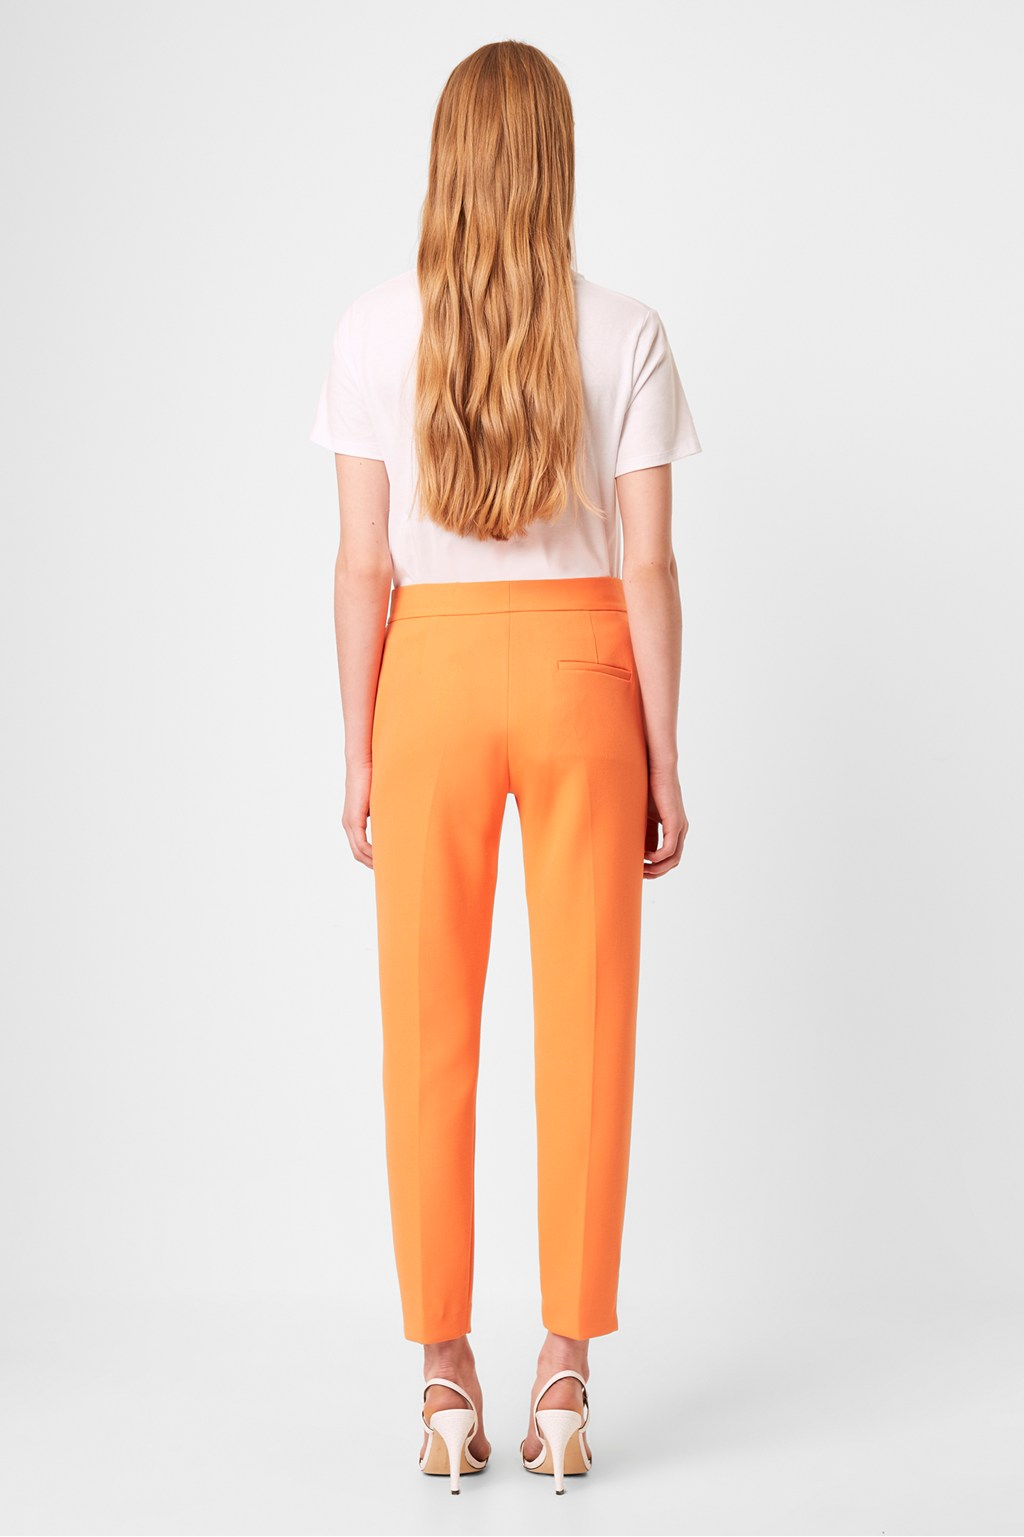 Adisa Sundae Tailored Trousers